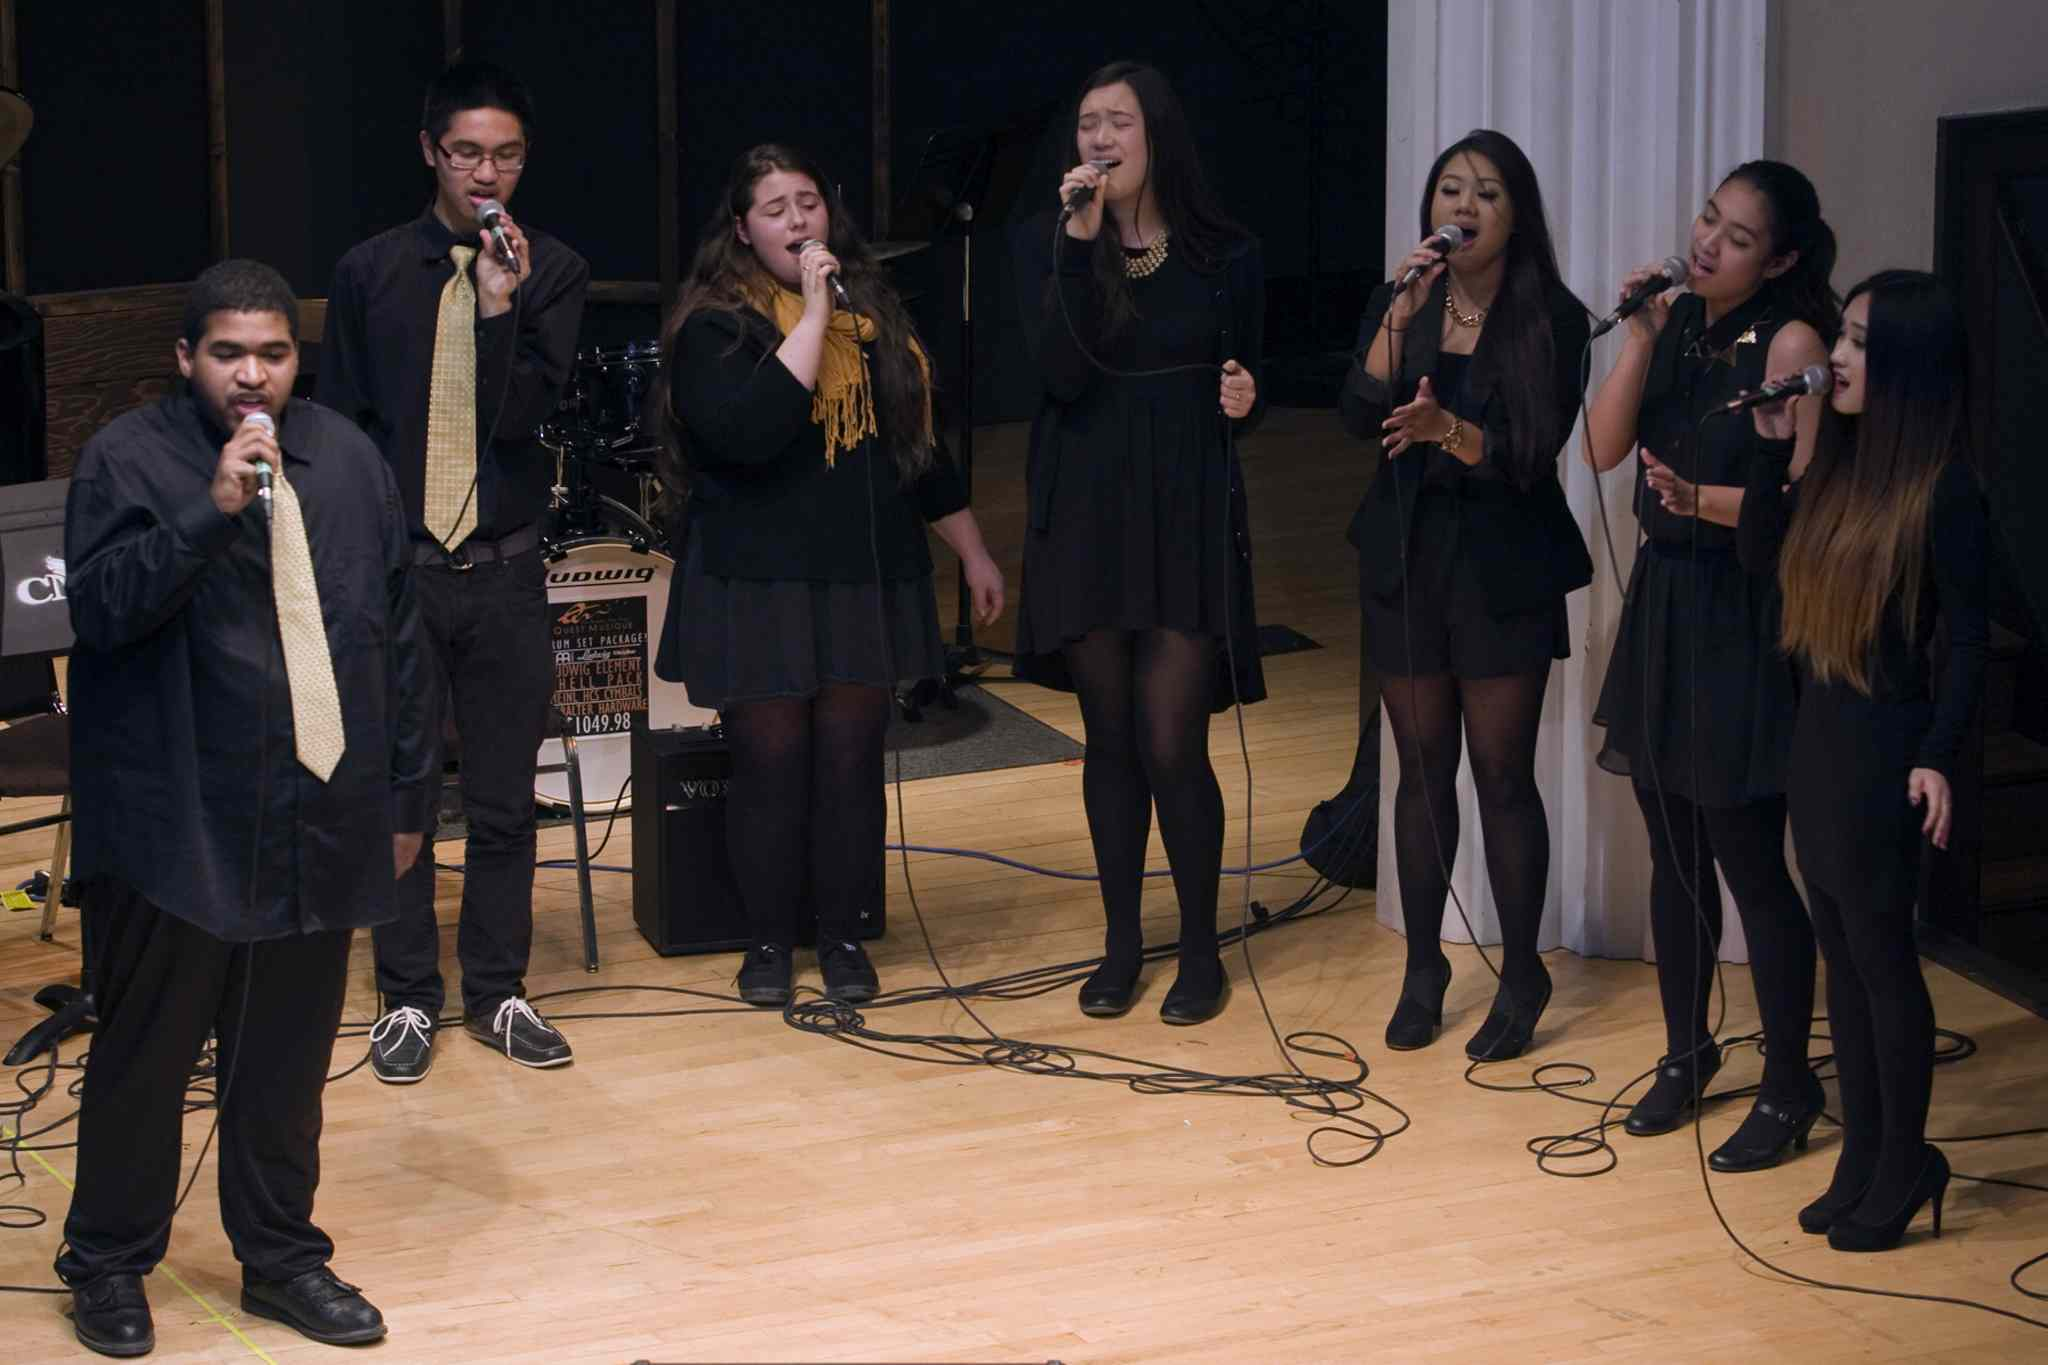 Members of Garden City Collegiate's Groove vocal jazz ensemble in action. Garden City Groove shares the stage with Denzal Sinclaire and the WJO on Feb. 9.